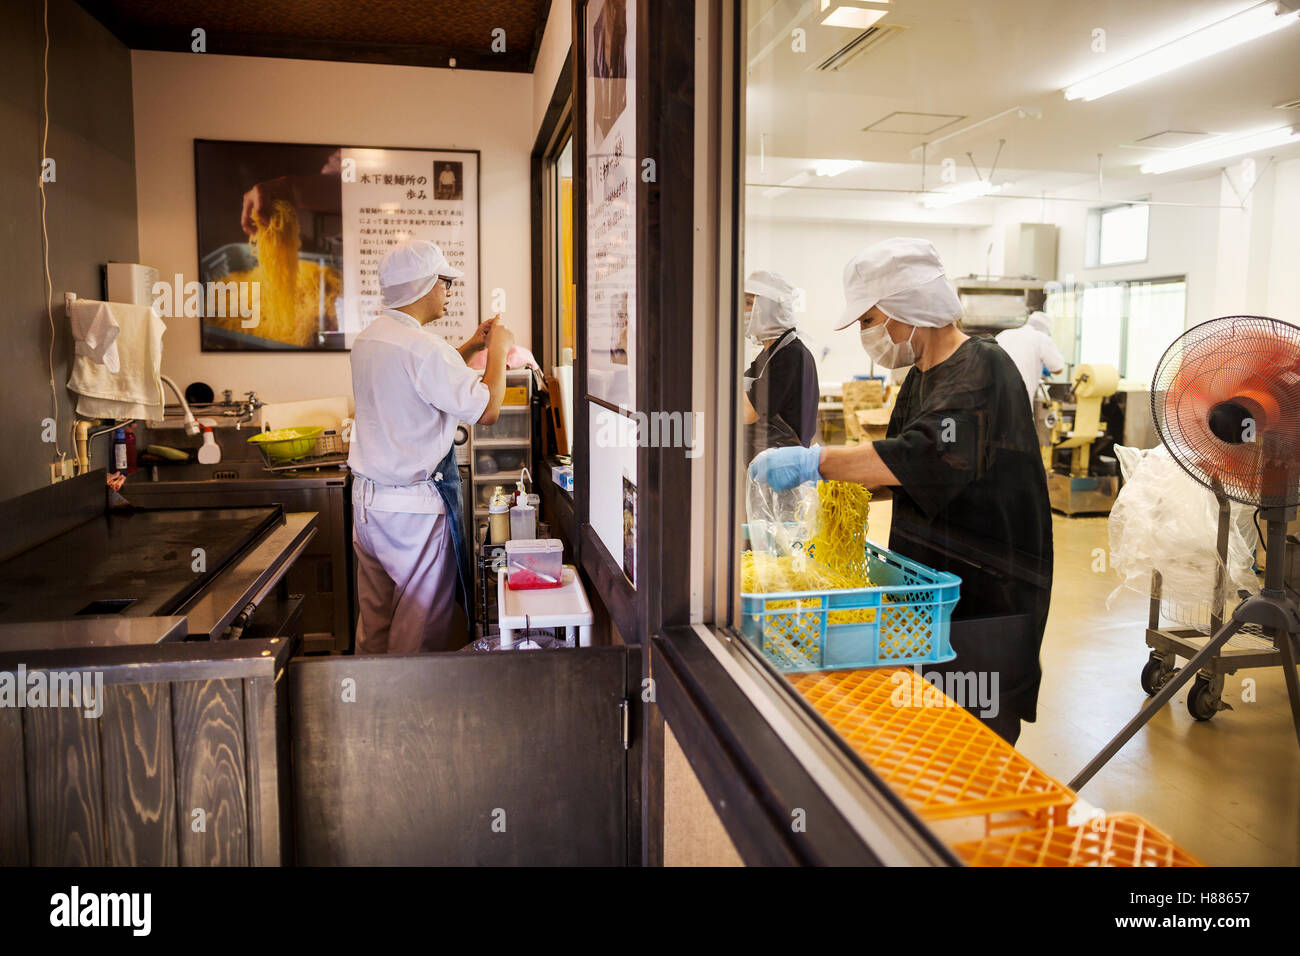 Factory production unit and commercial  kitchen serving a noodle shop. People working and a chef at a stove. - Stock Image